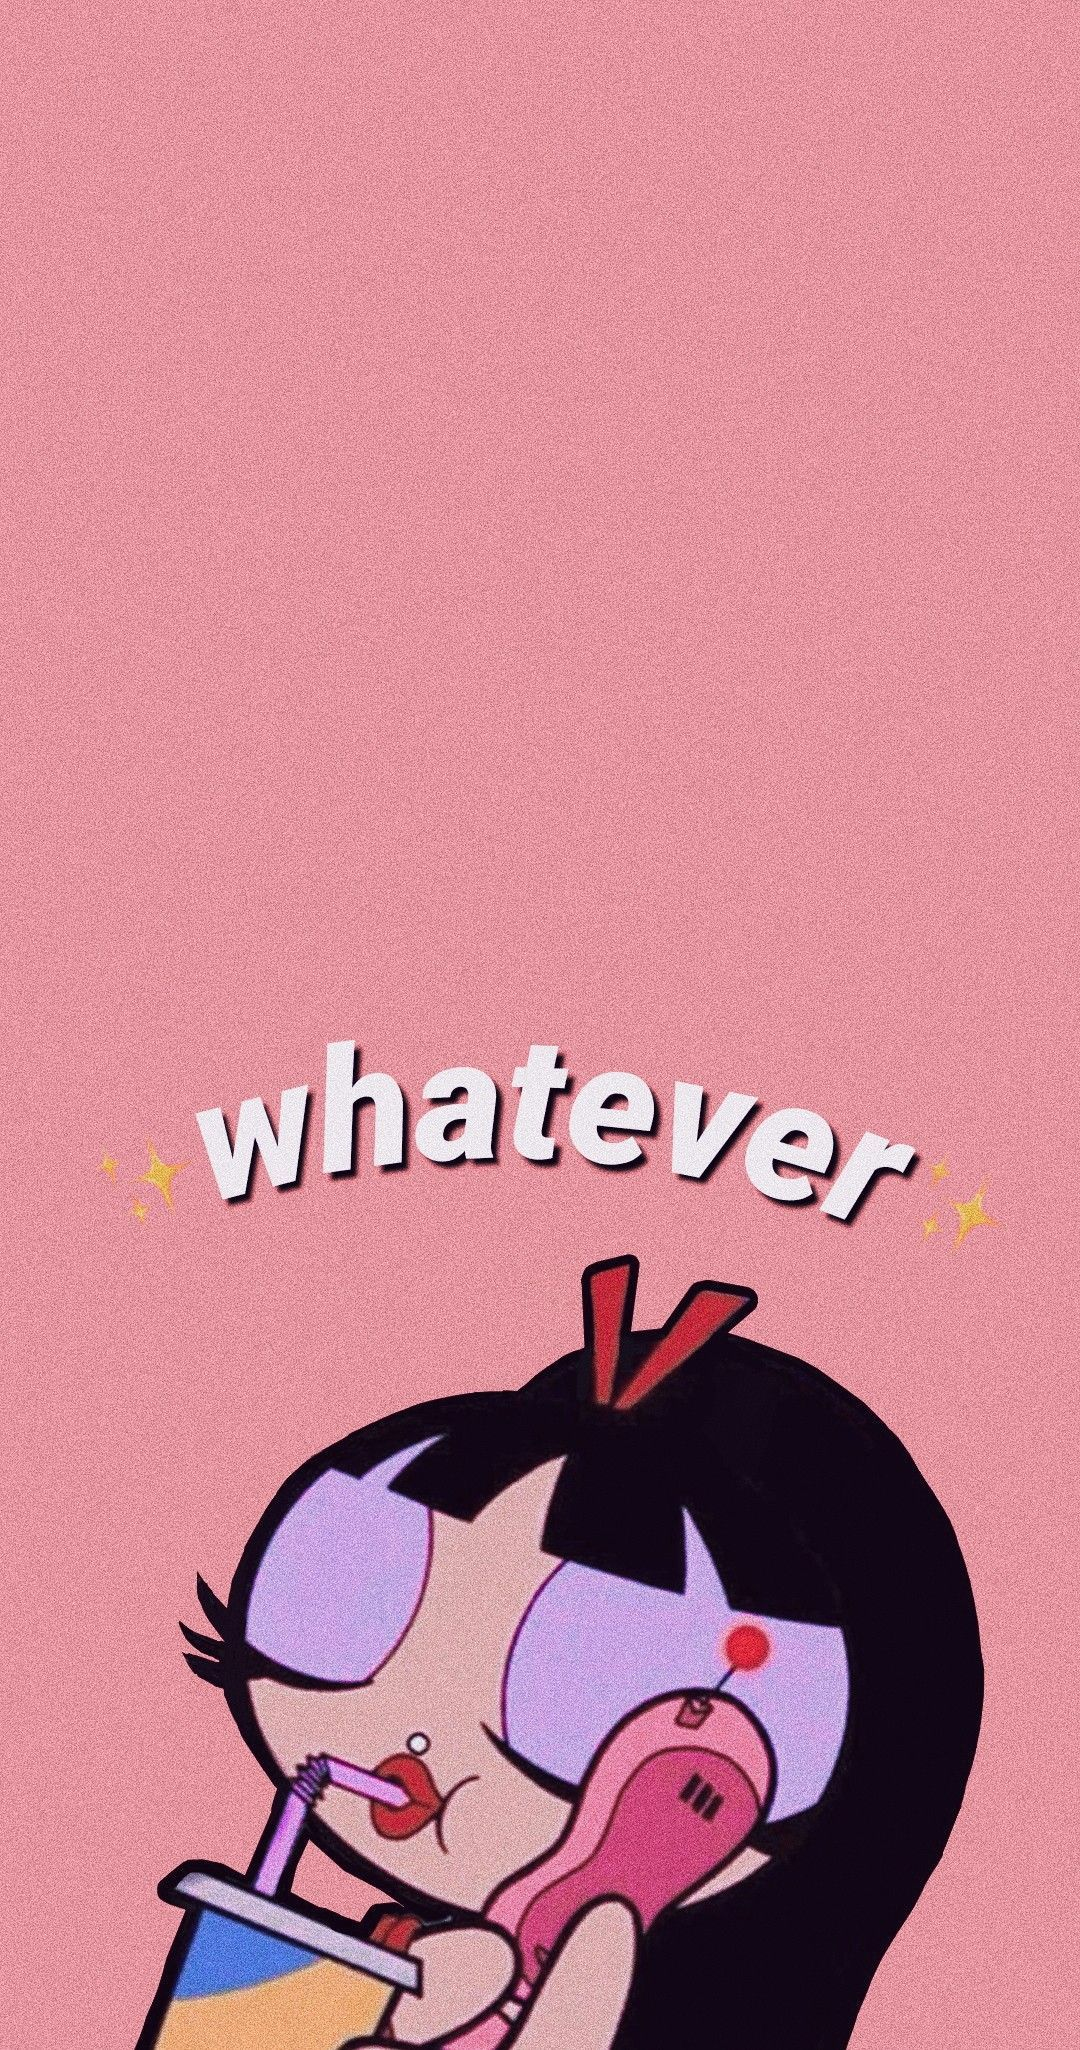 Buttercup Powerpuffgirls Lockscreen Wallpaper Pink Pinkwallpaper Aesthetic Ca In 2020 Pink Wallpaper Cartoon Powerpuff Girls Wallpaper Cartoon Wallpaper Iphone